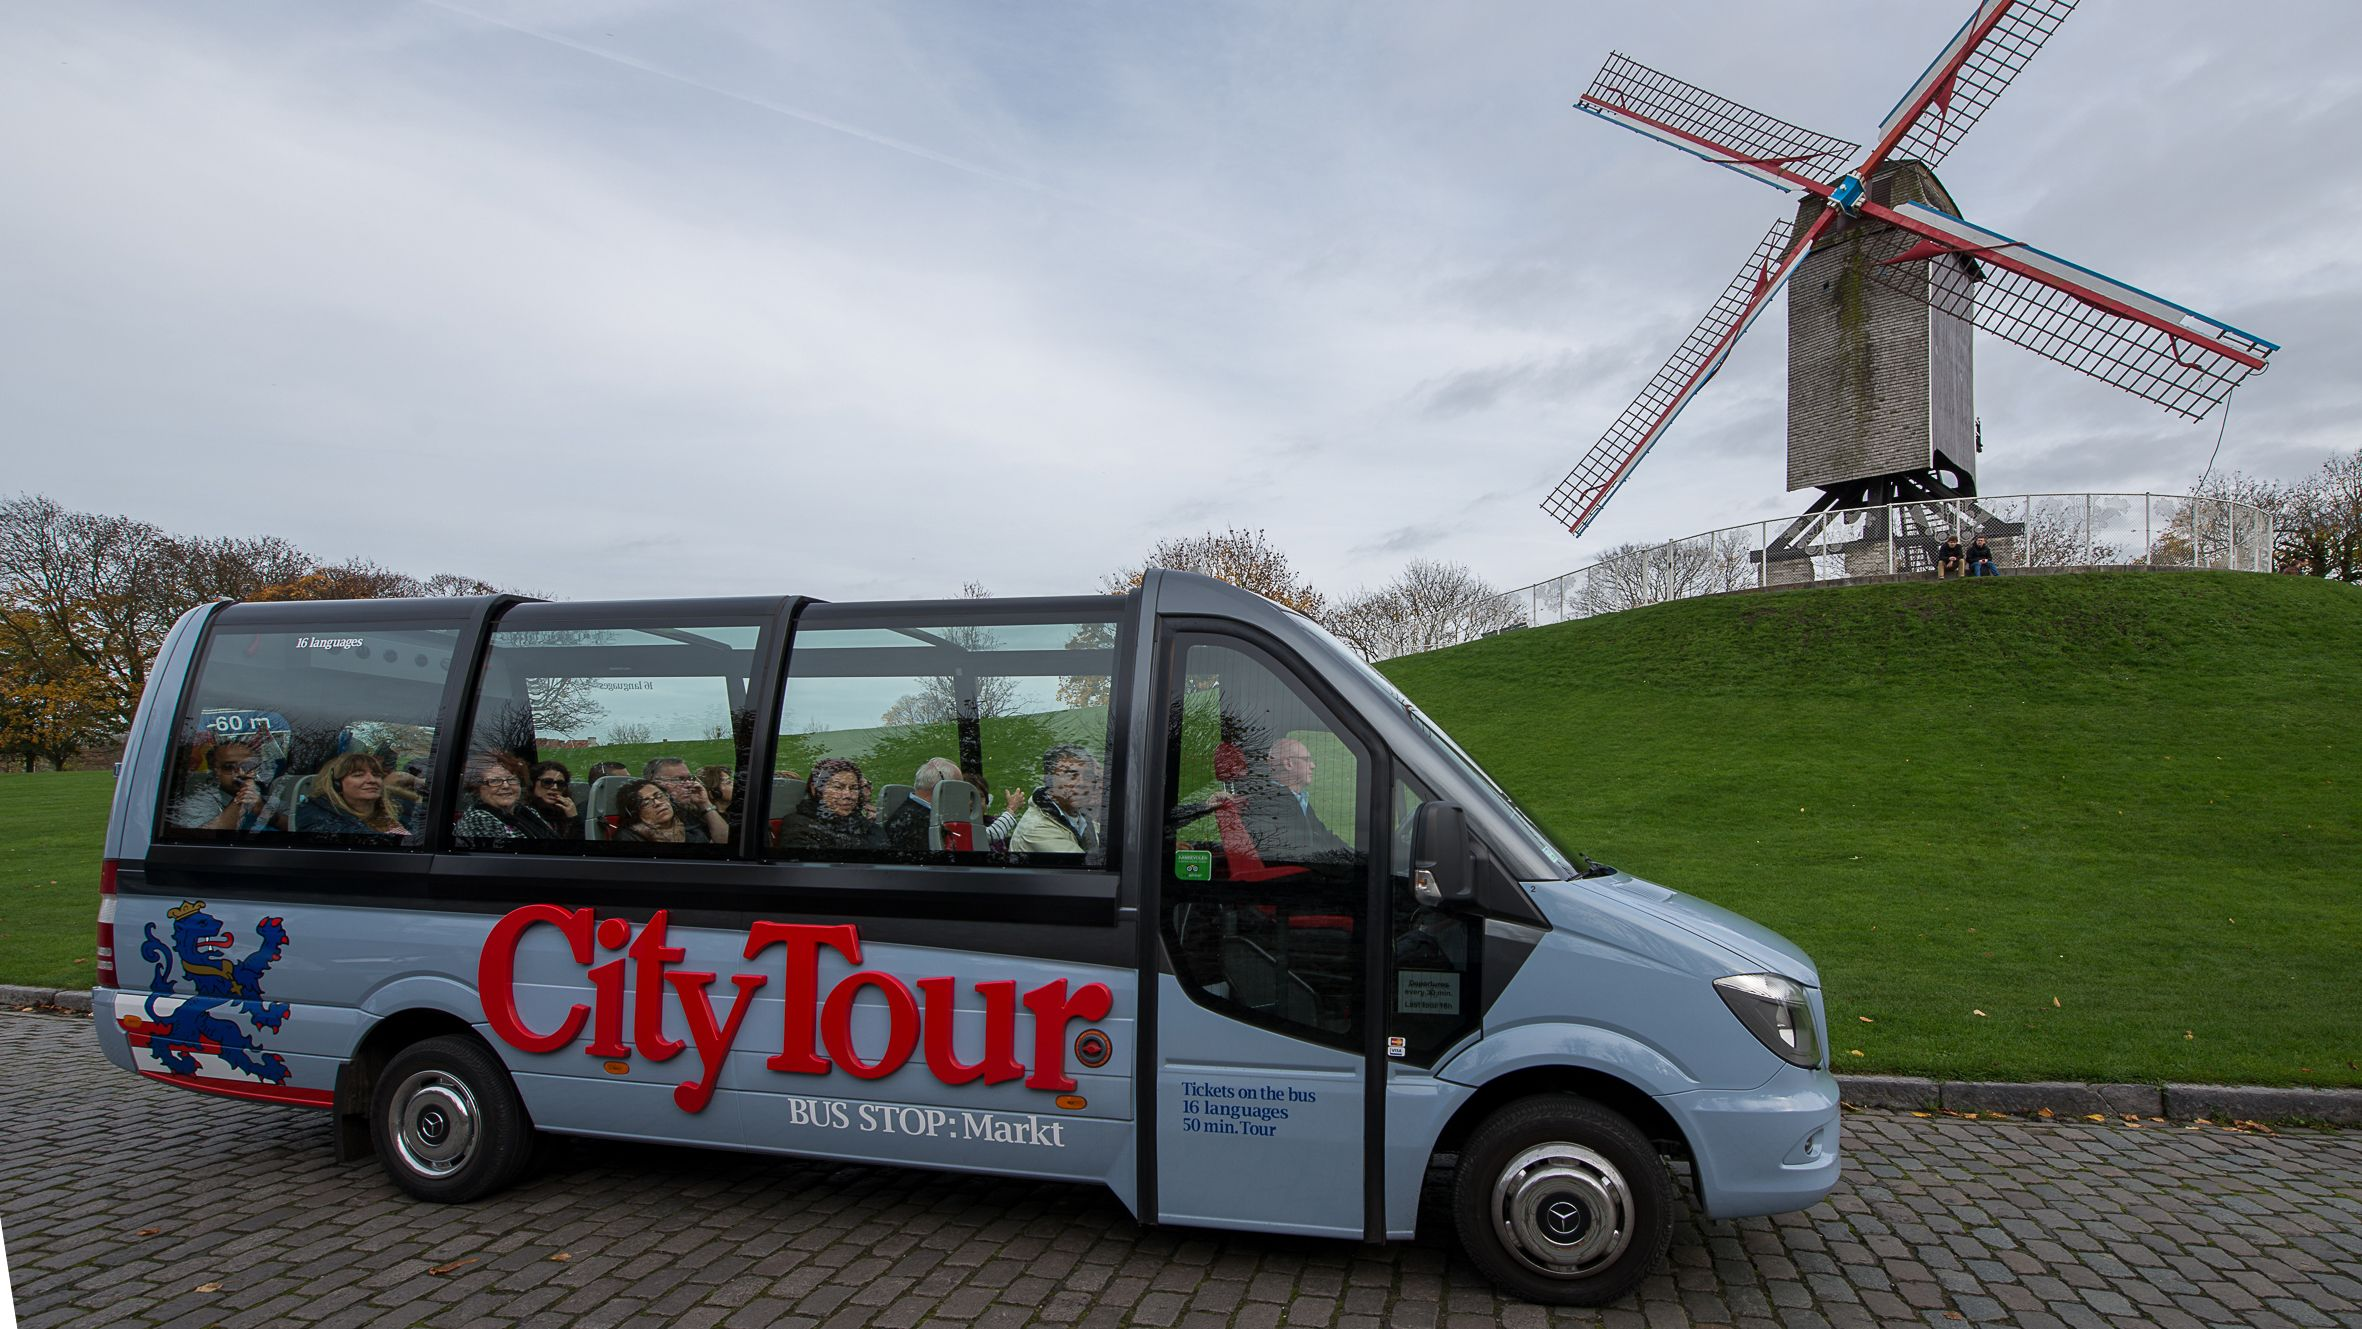 City Tour bus on country side